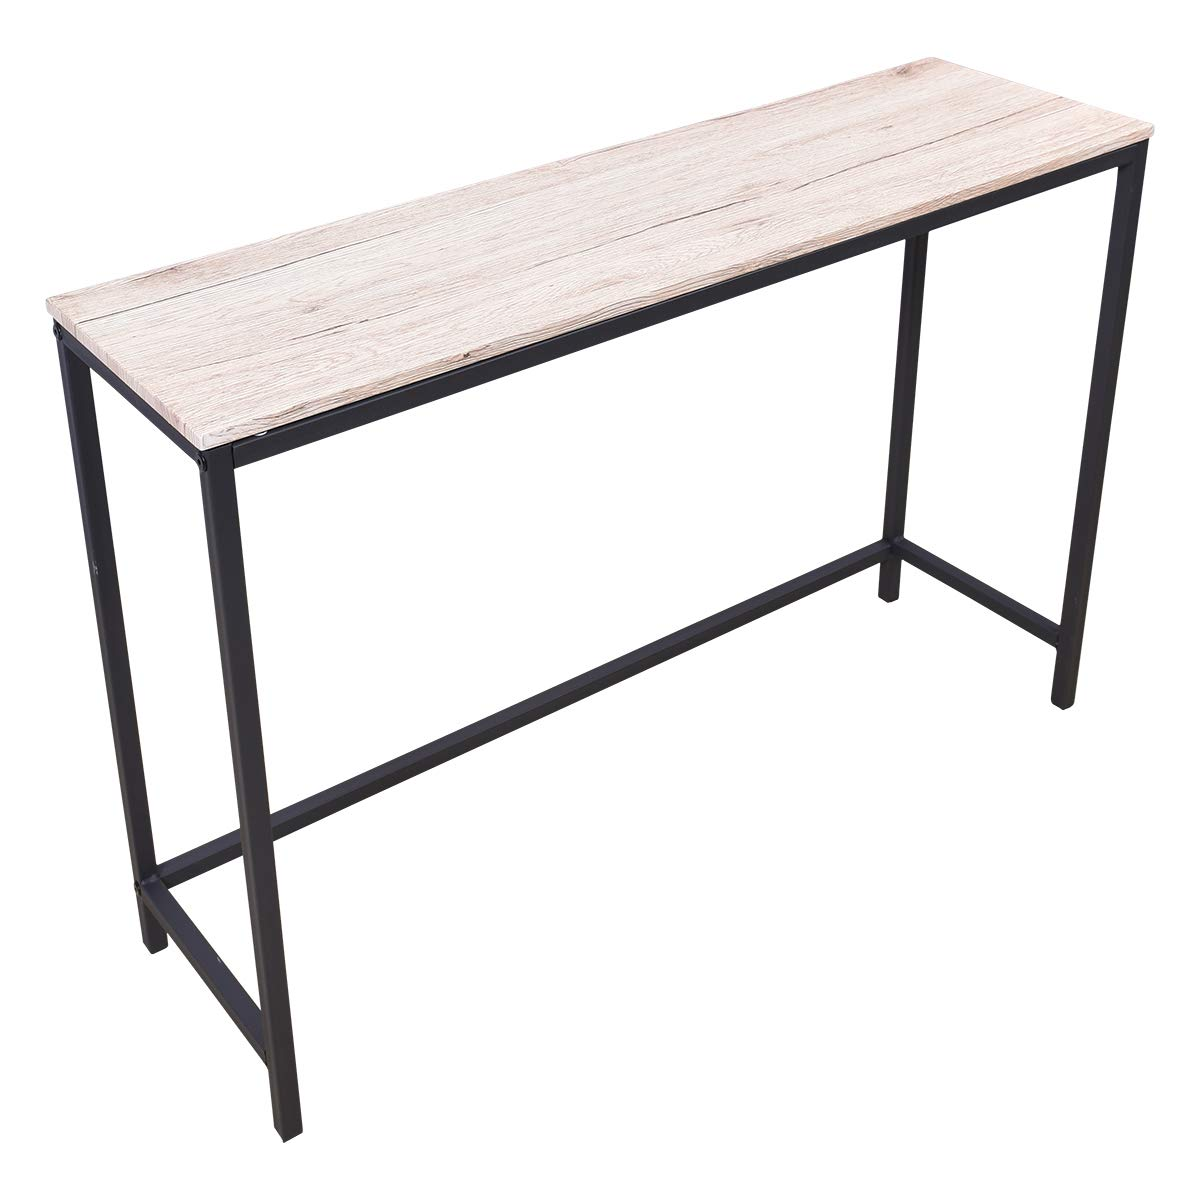 BOFENG Rustic Writing Desk,Home Office Table with Solid Wood and Heavy Duty Metal Frame as Computer Desk or Study Desk Natural Wood